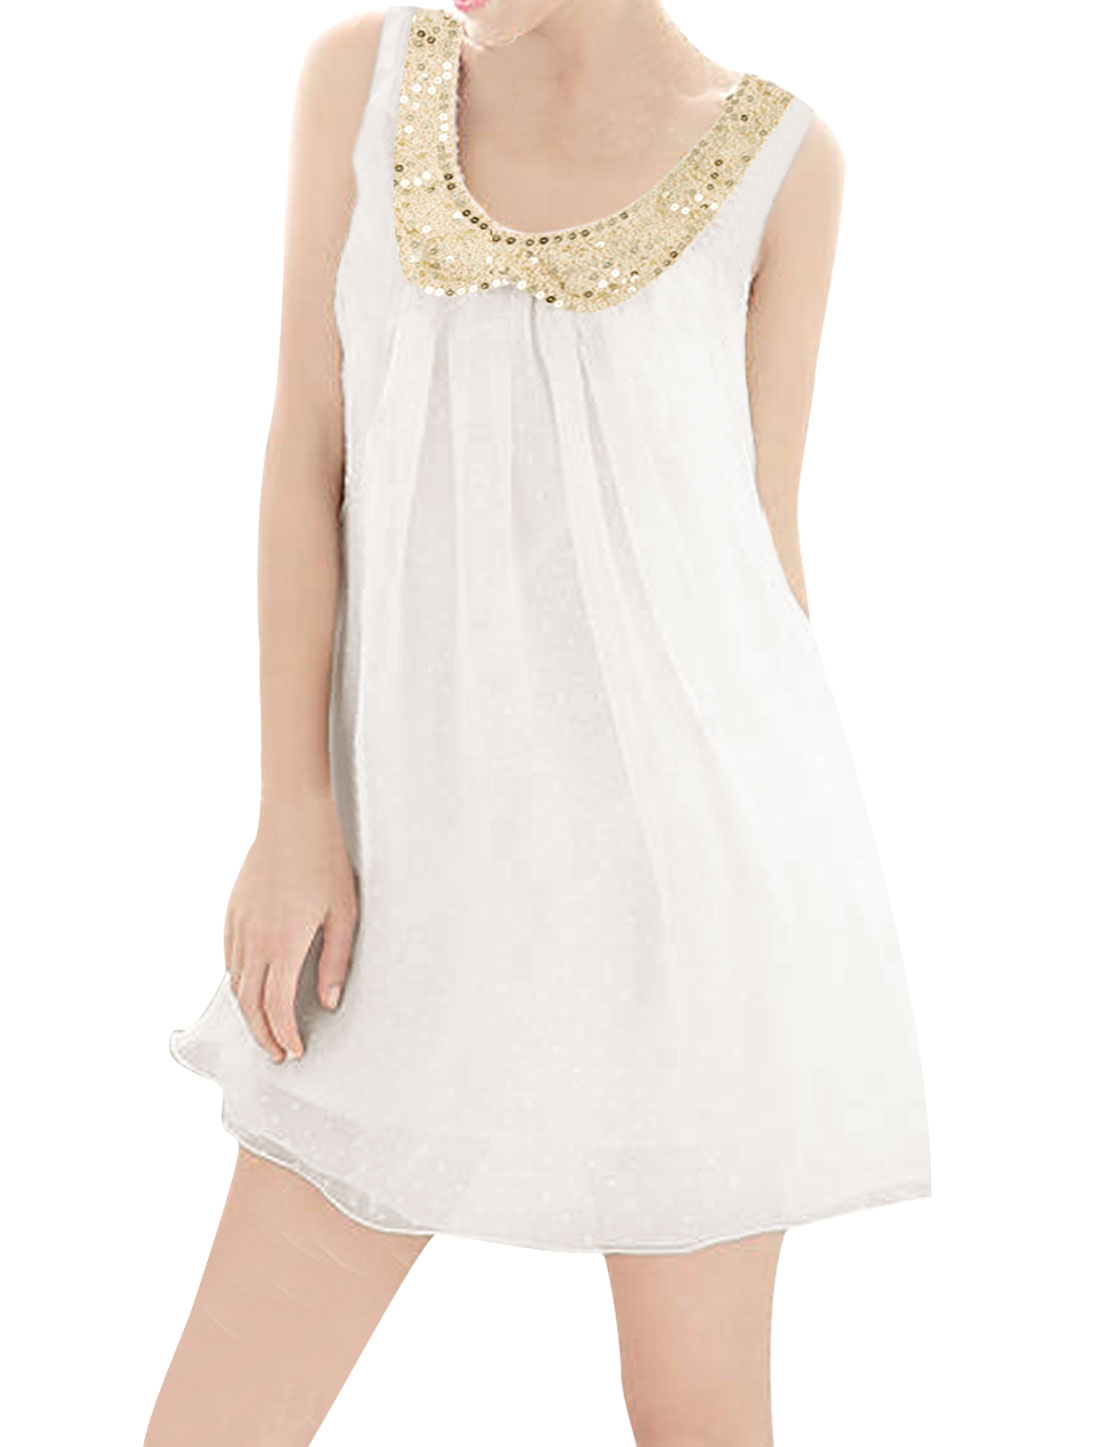 Lady Sequined Decor Peter Pan Collar White Mini Tank Dress M